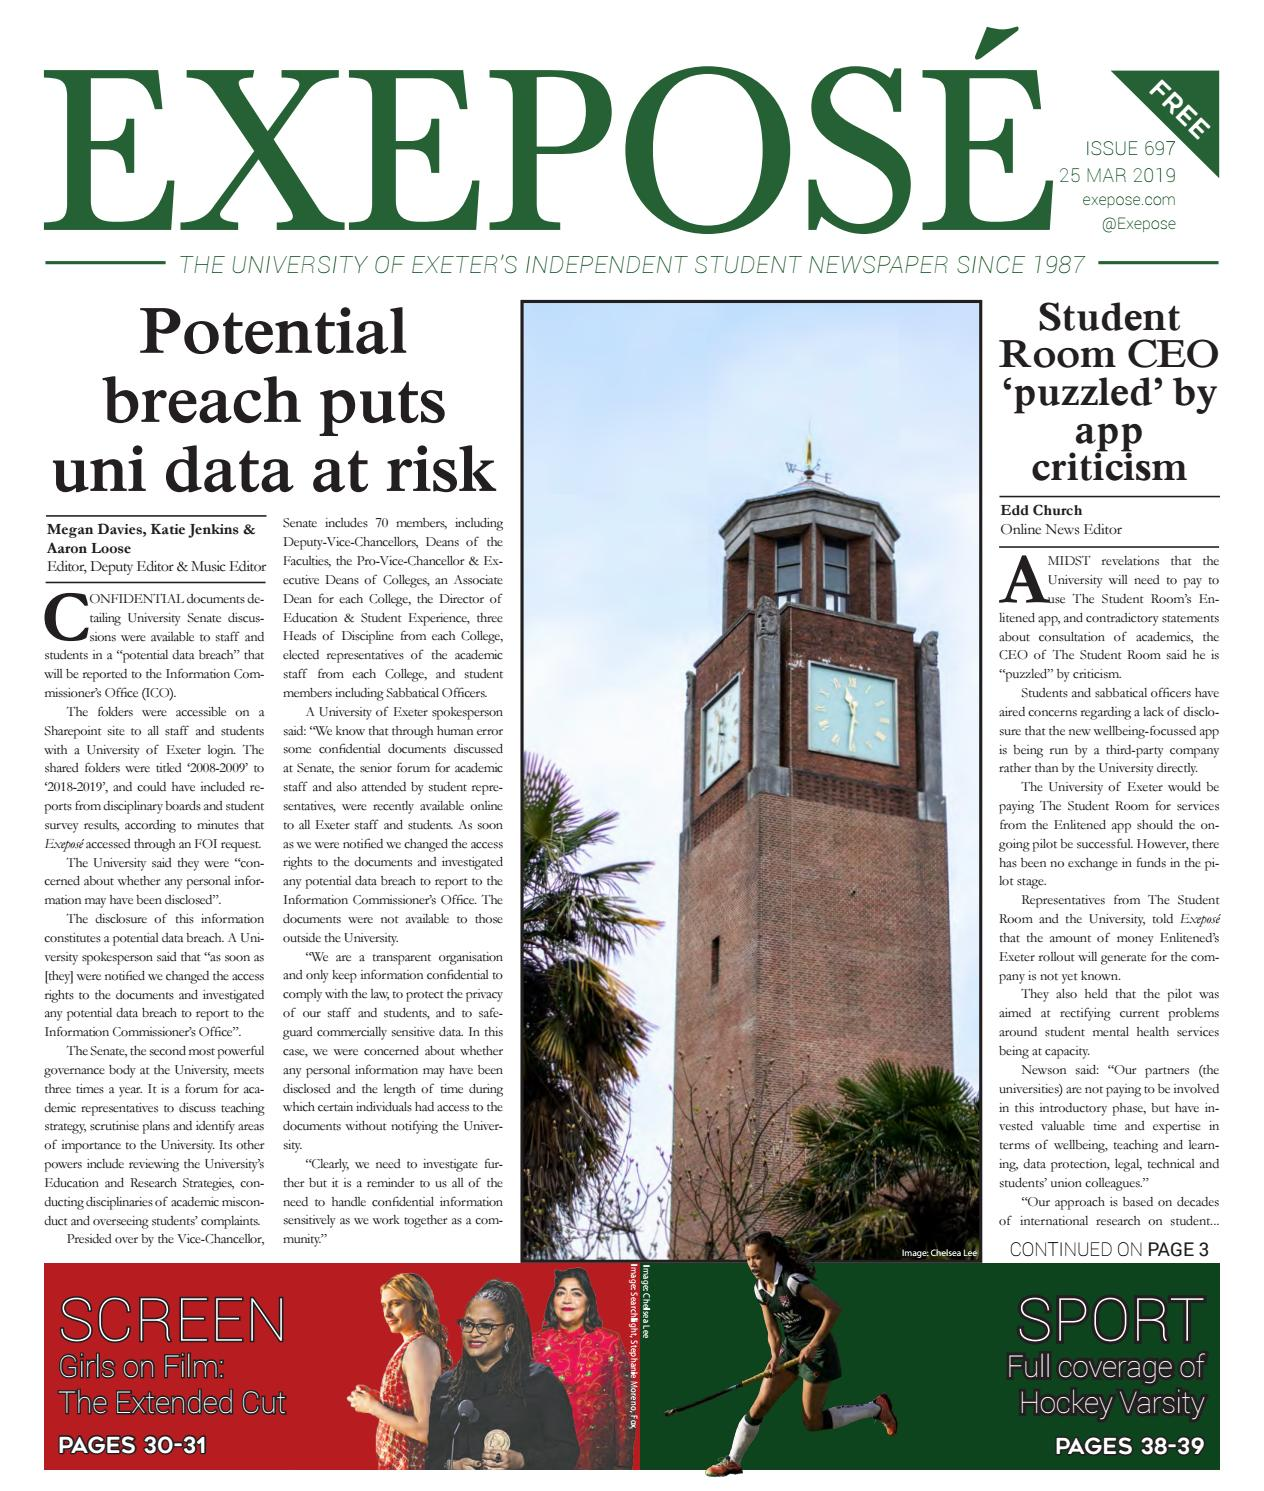 Issue 697 // 25 March 2019 by Exeposé - issuu